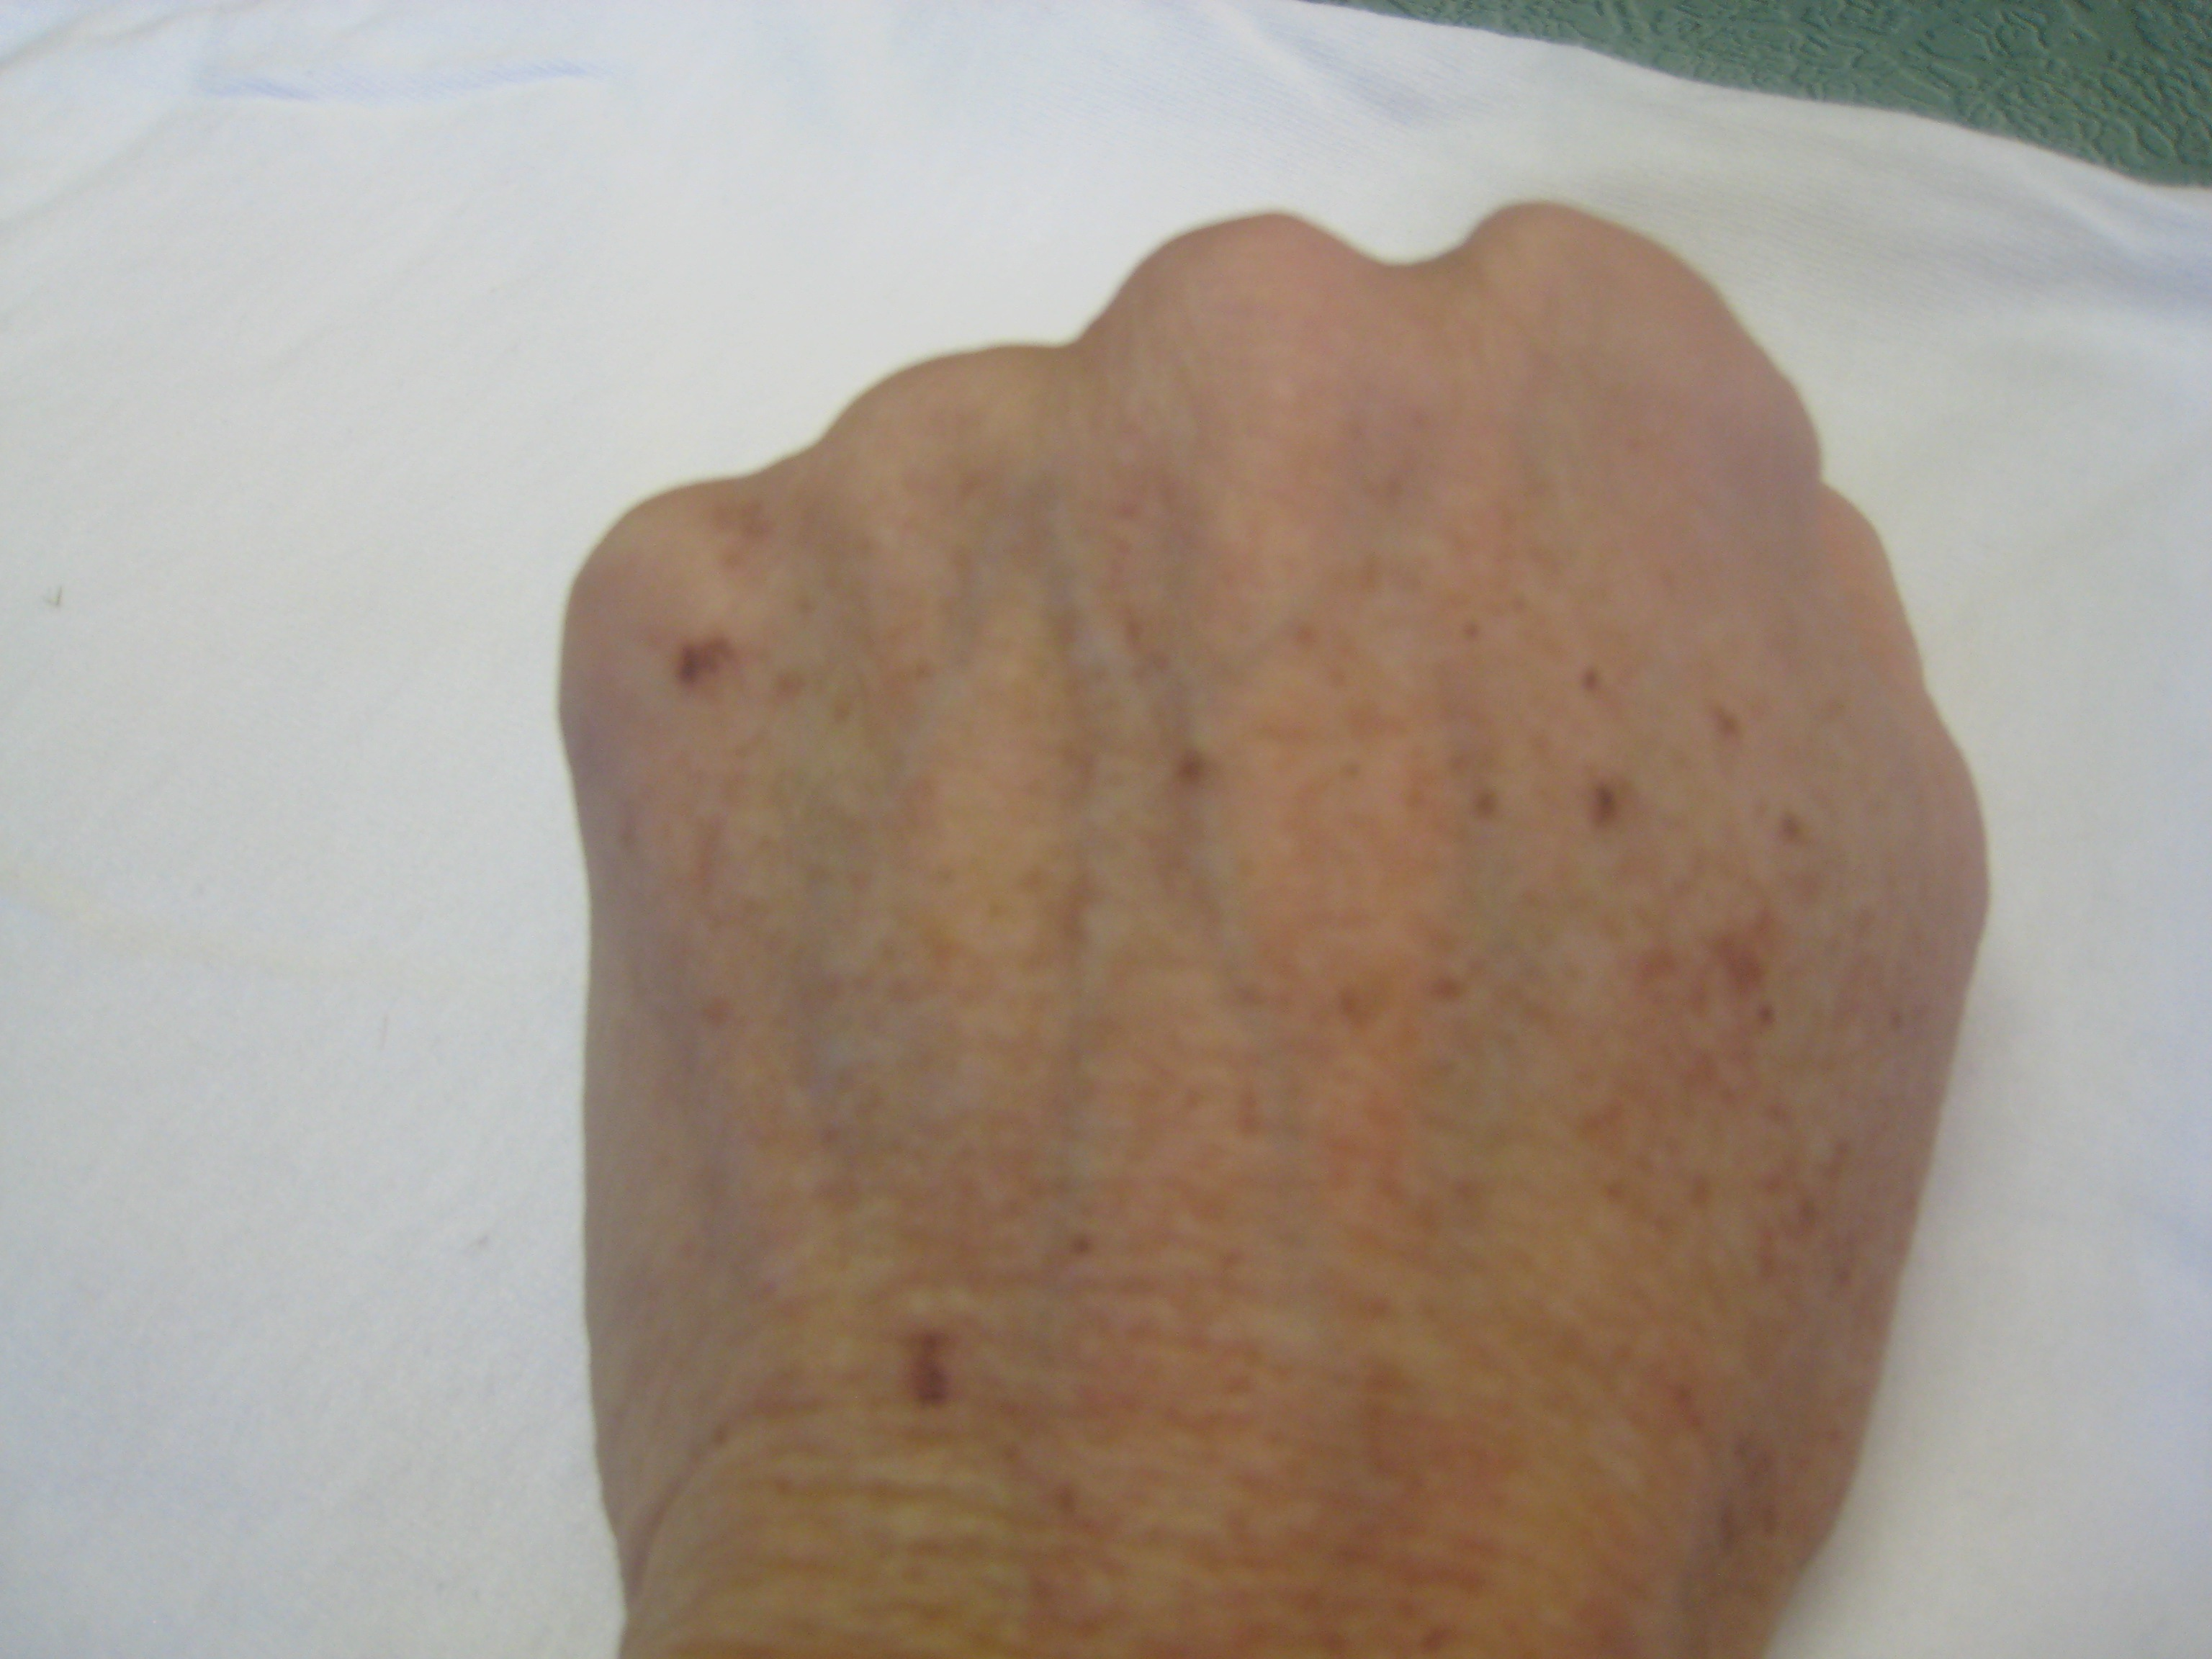 Red Spots On Hands